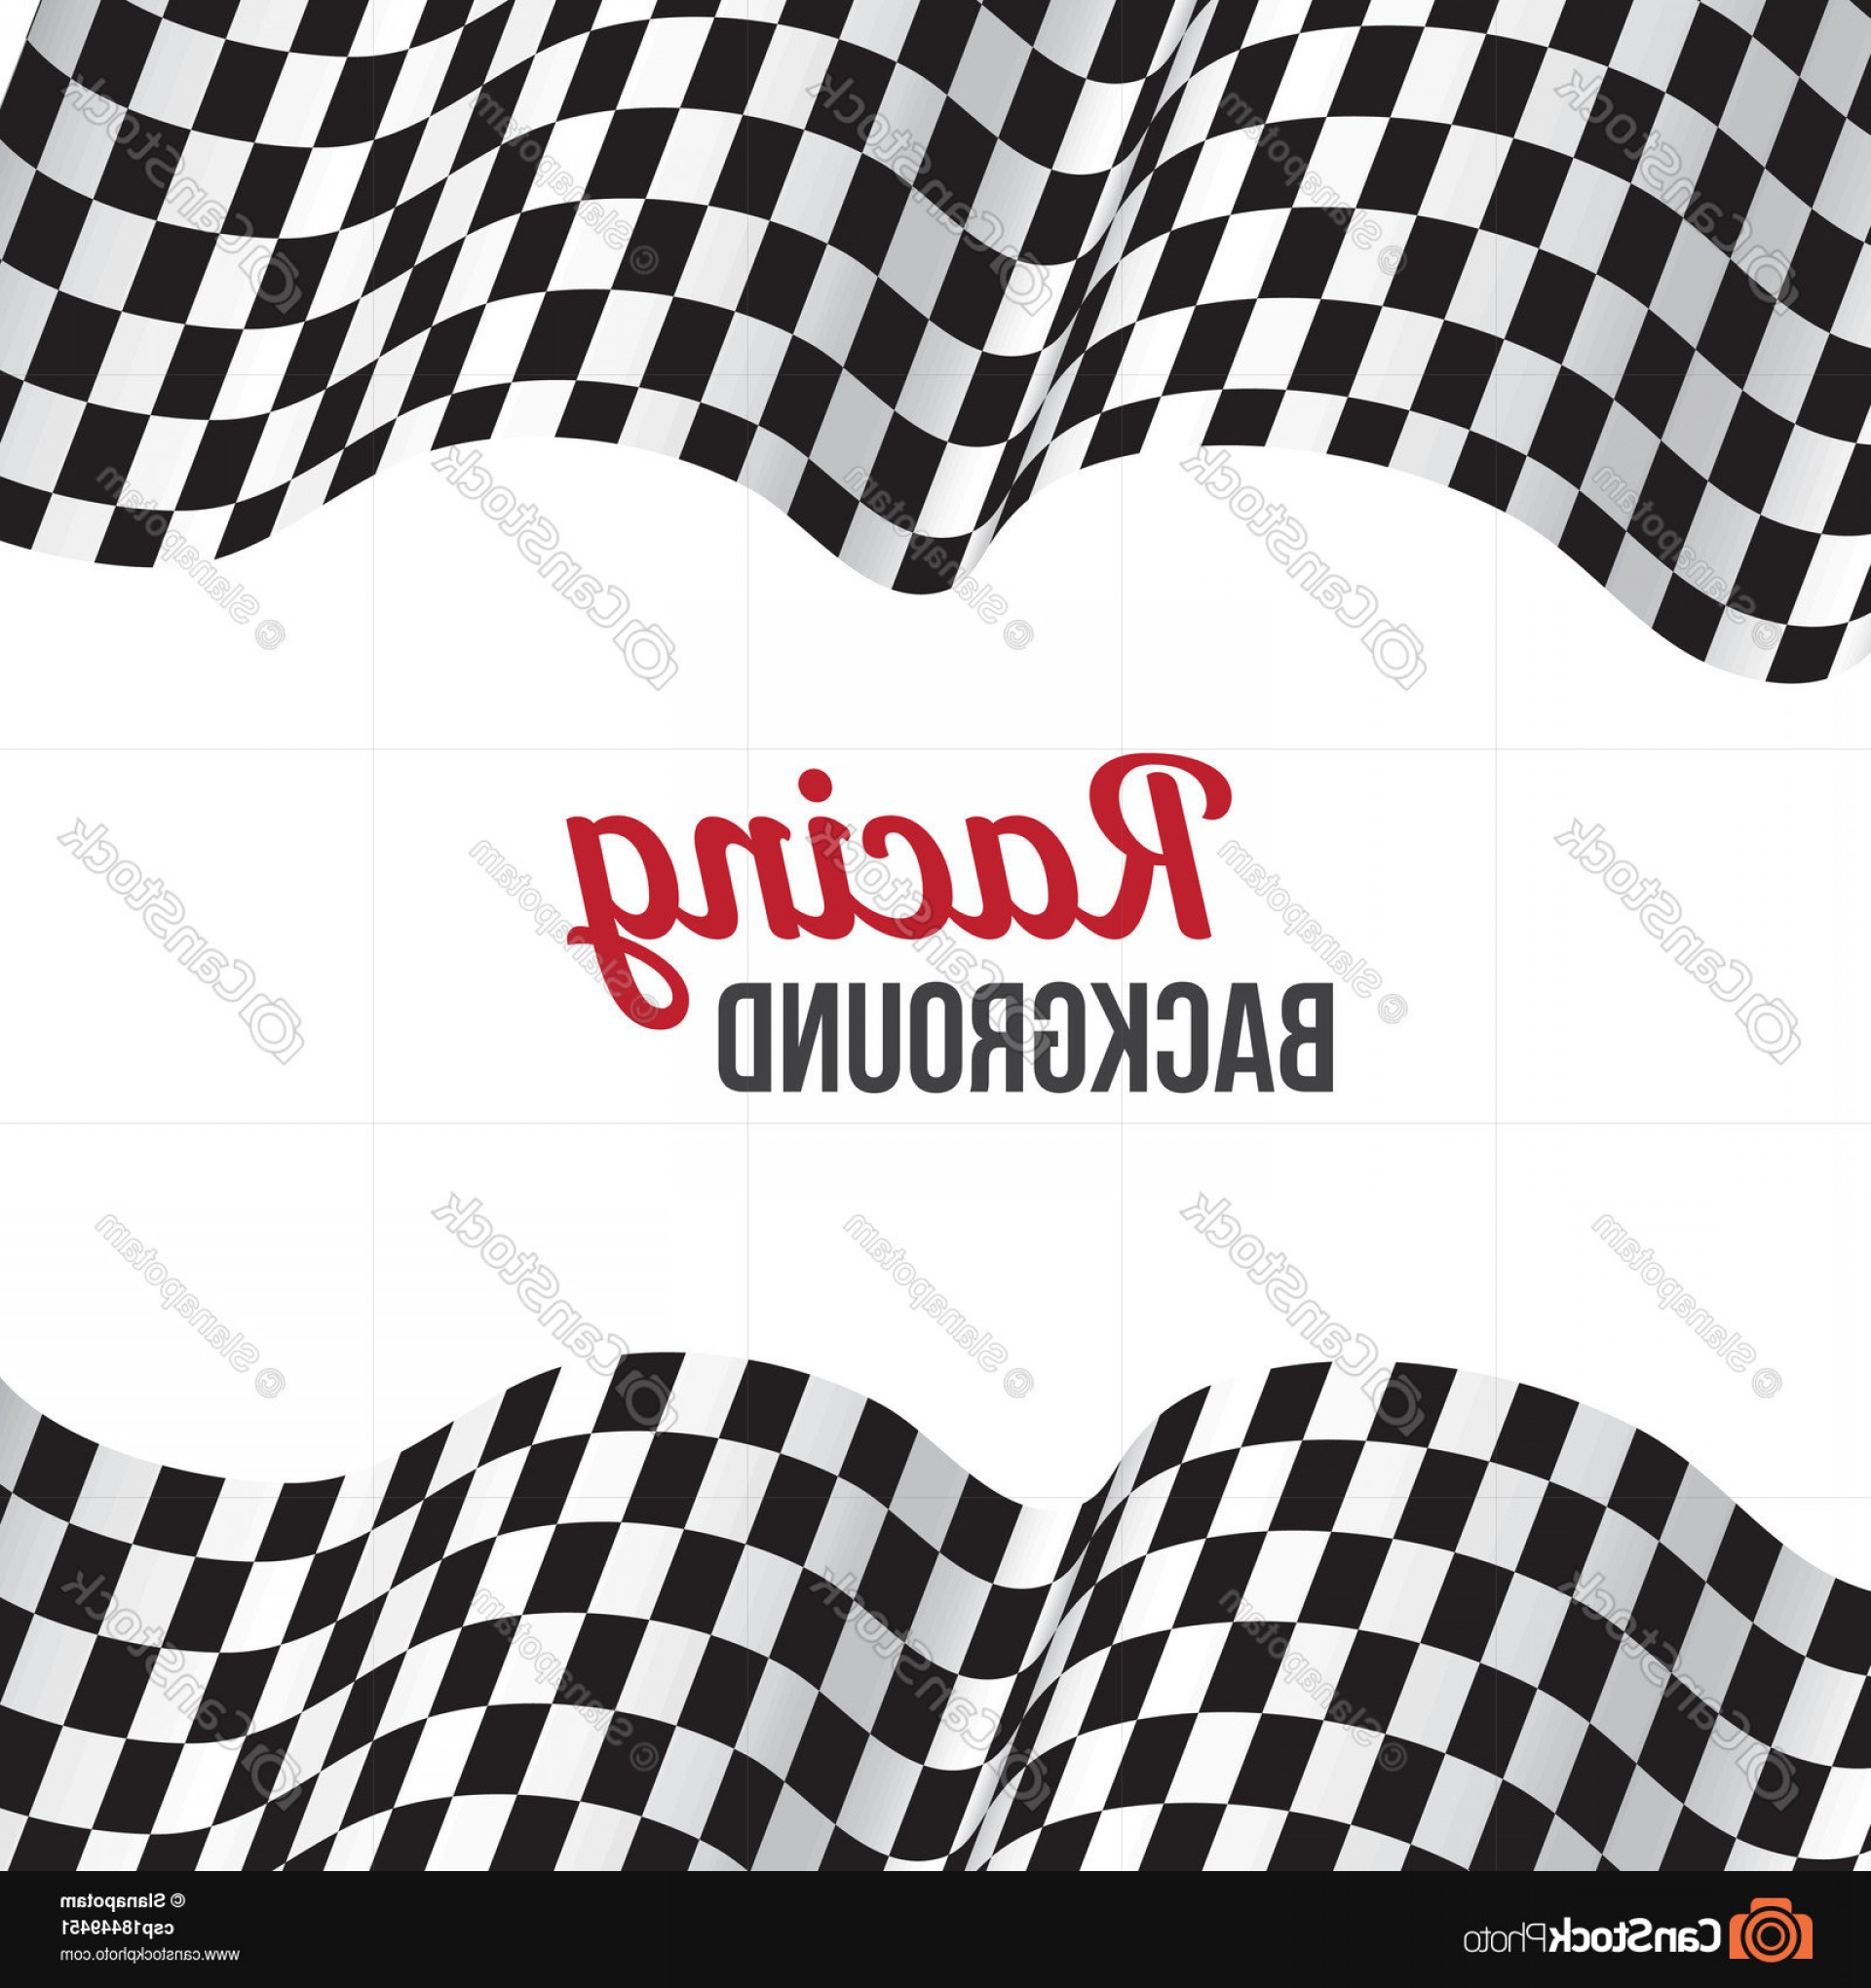 Checkered Flag Background Vector: Background With Checkered Racing Flag